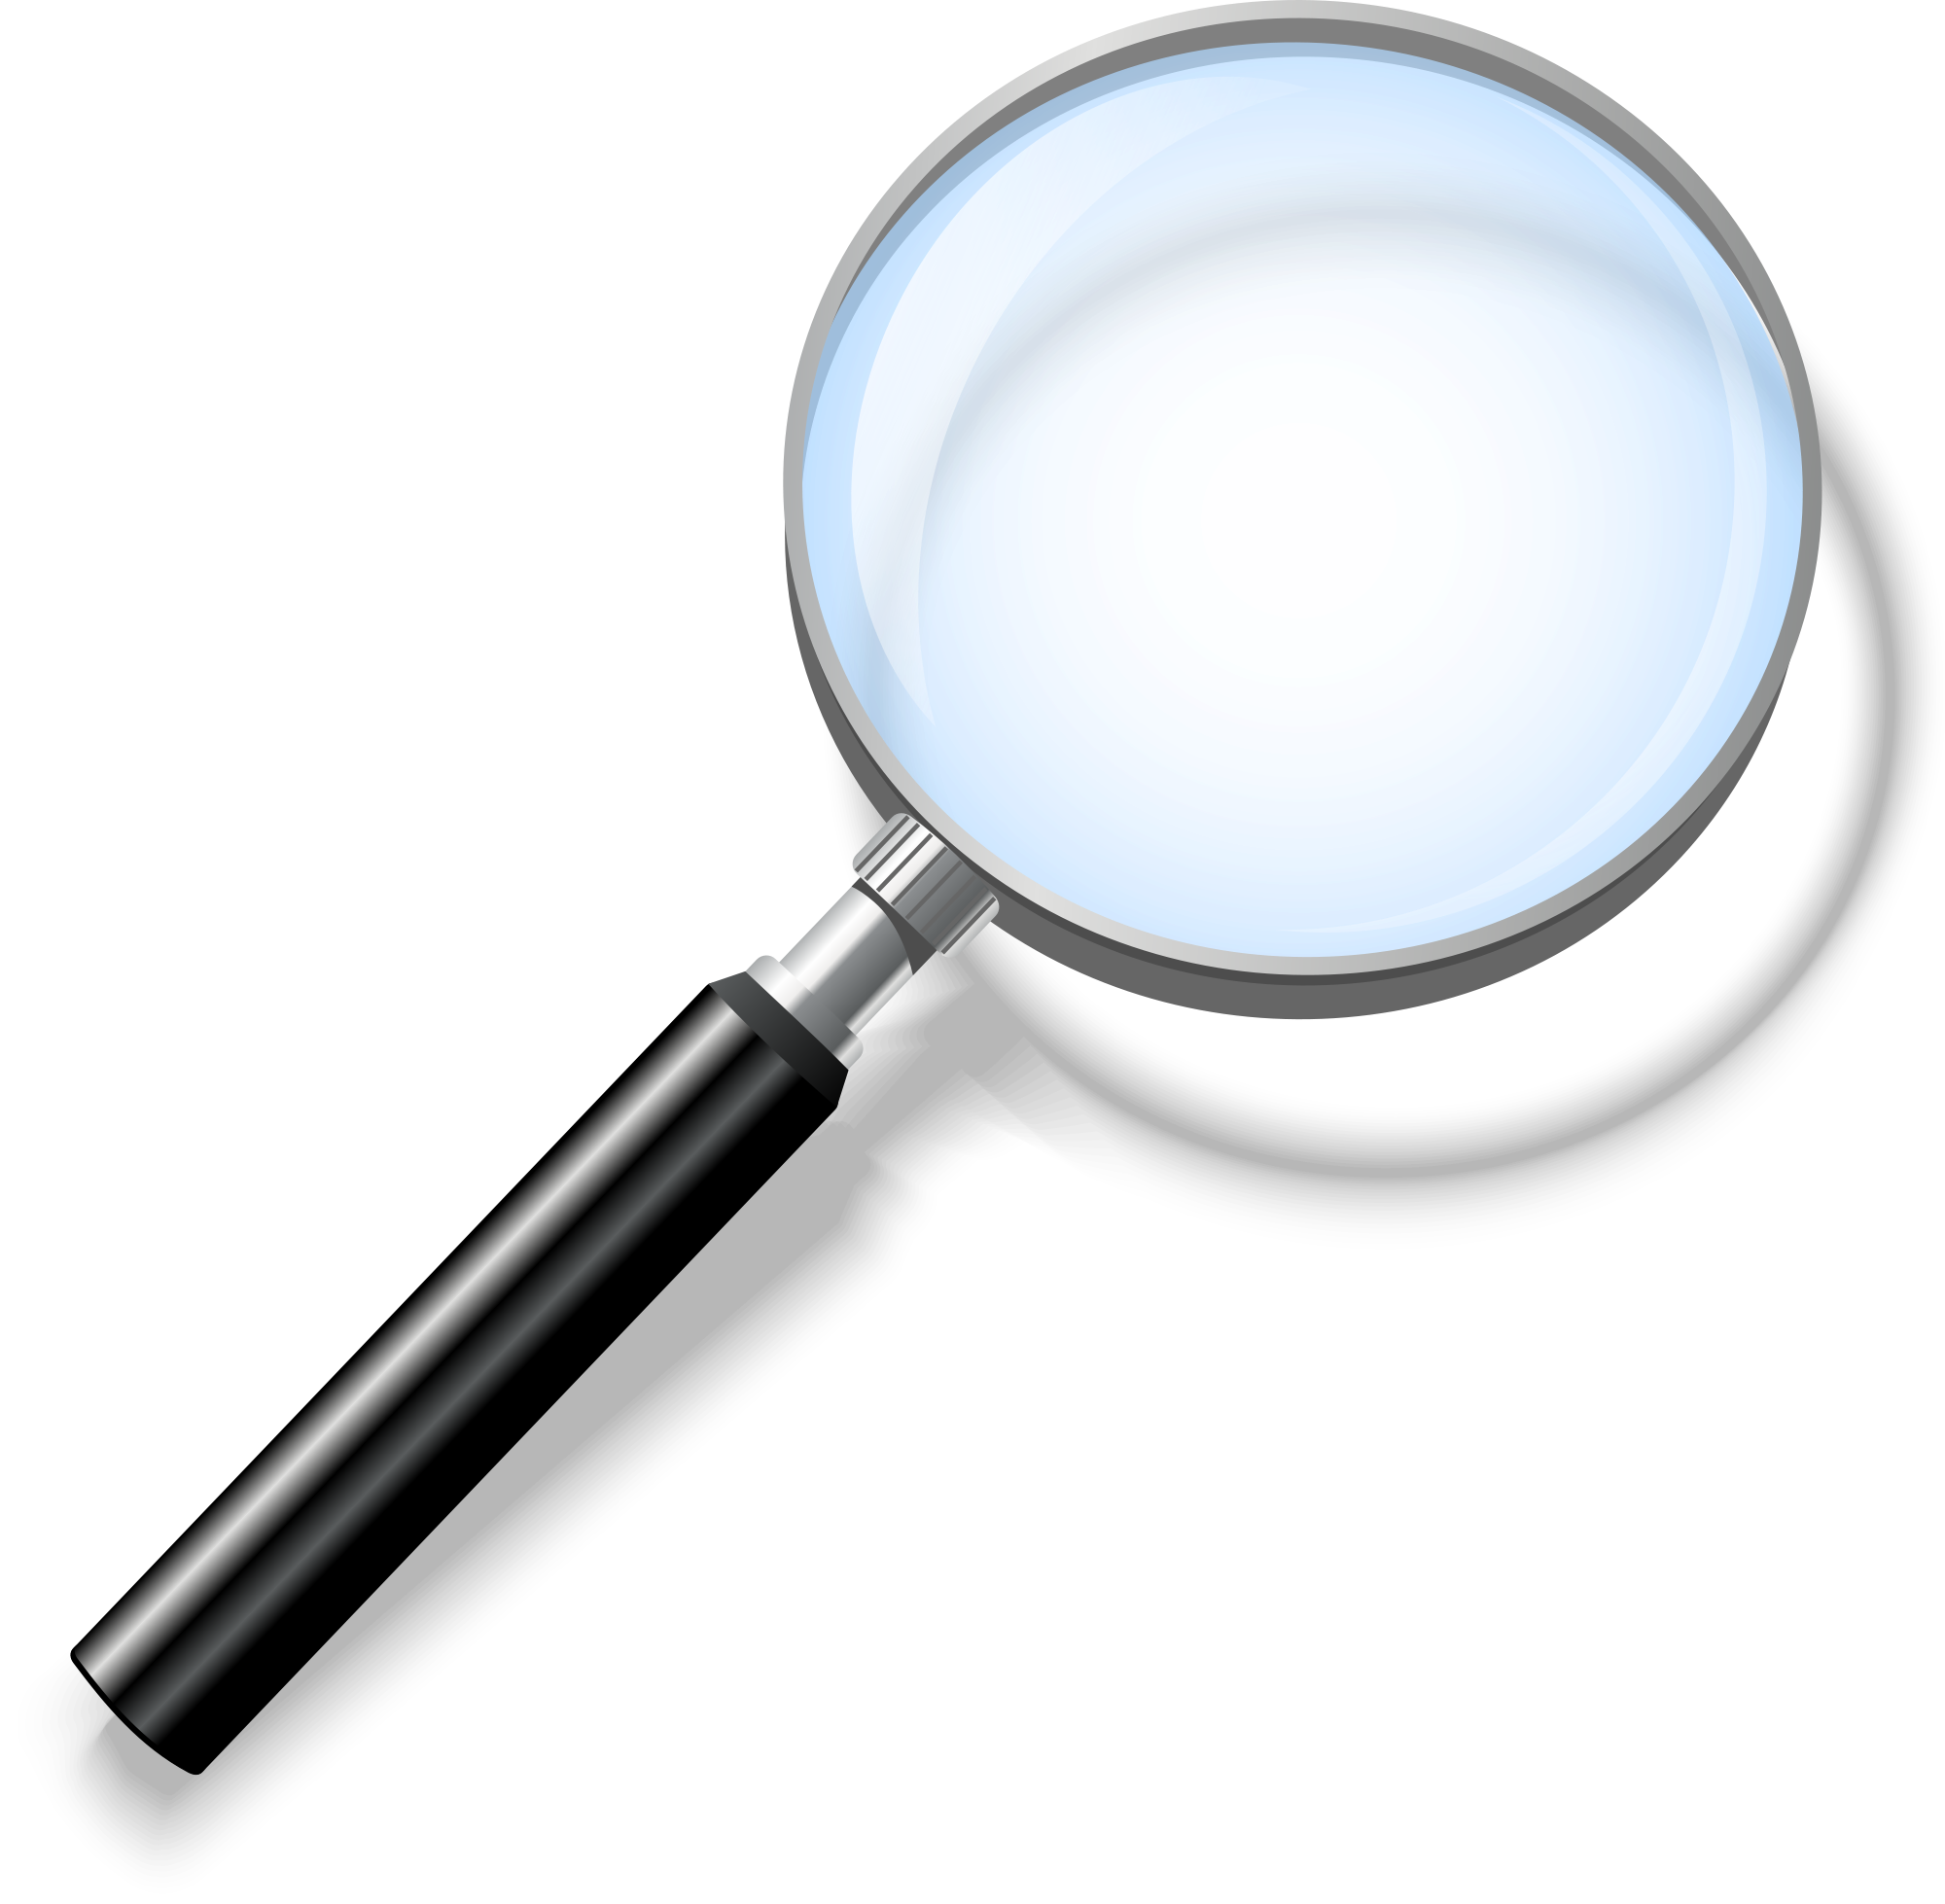 Magnifying glass vector png. File icon mgx svg